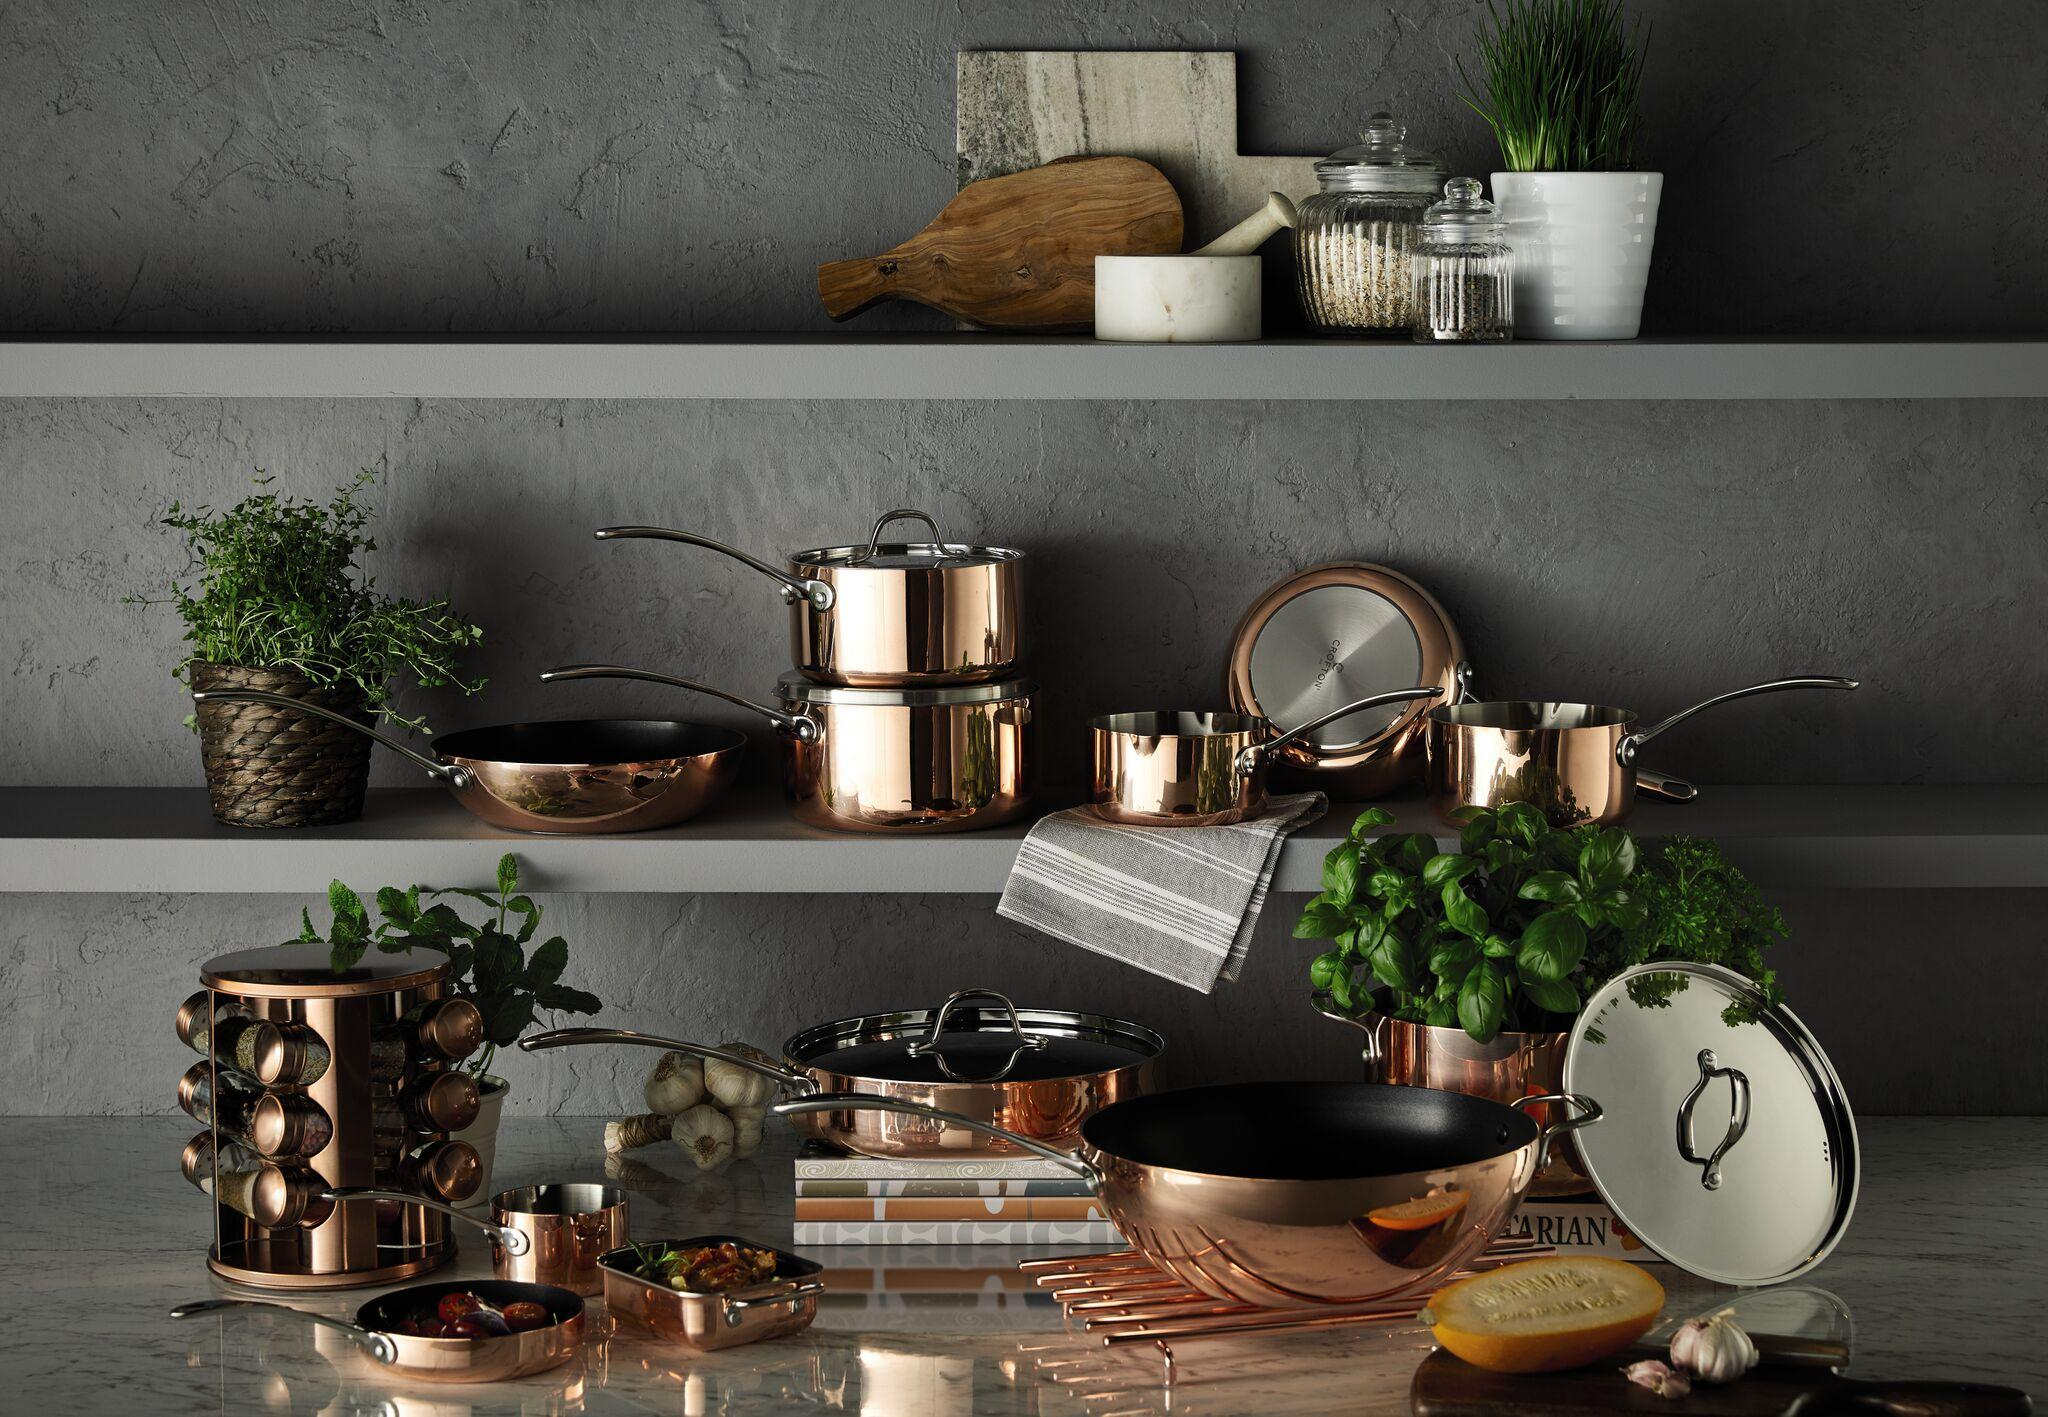 Aldi Saucepans Aldi Ireland Announces Return Of Popular Copper Kitchen Collection